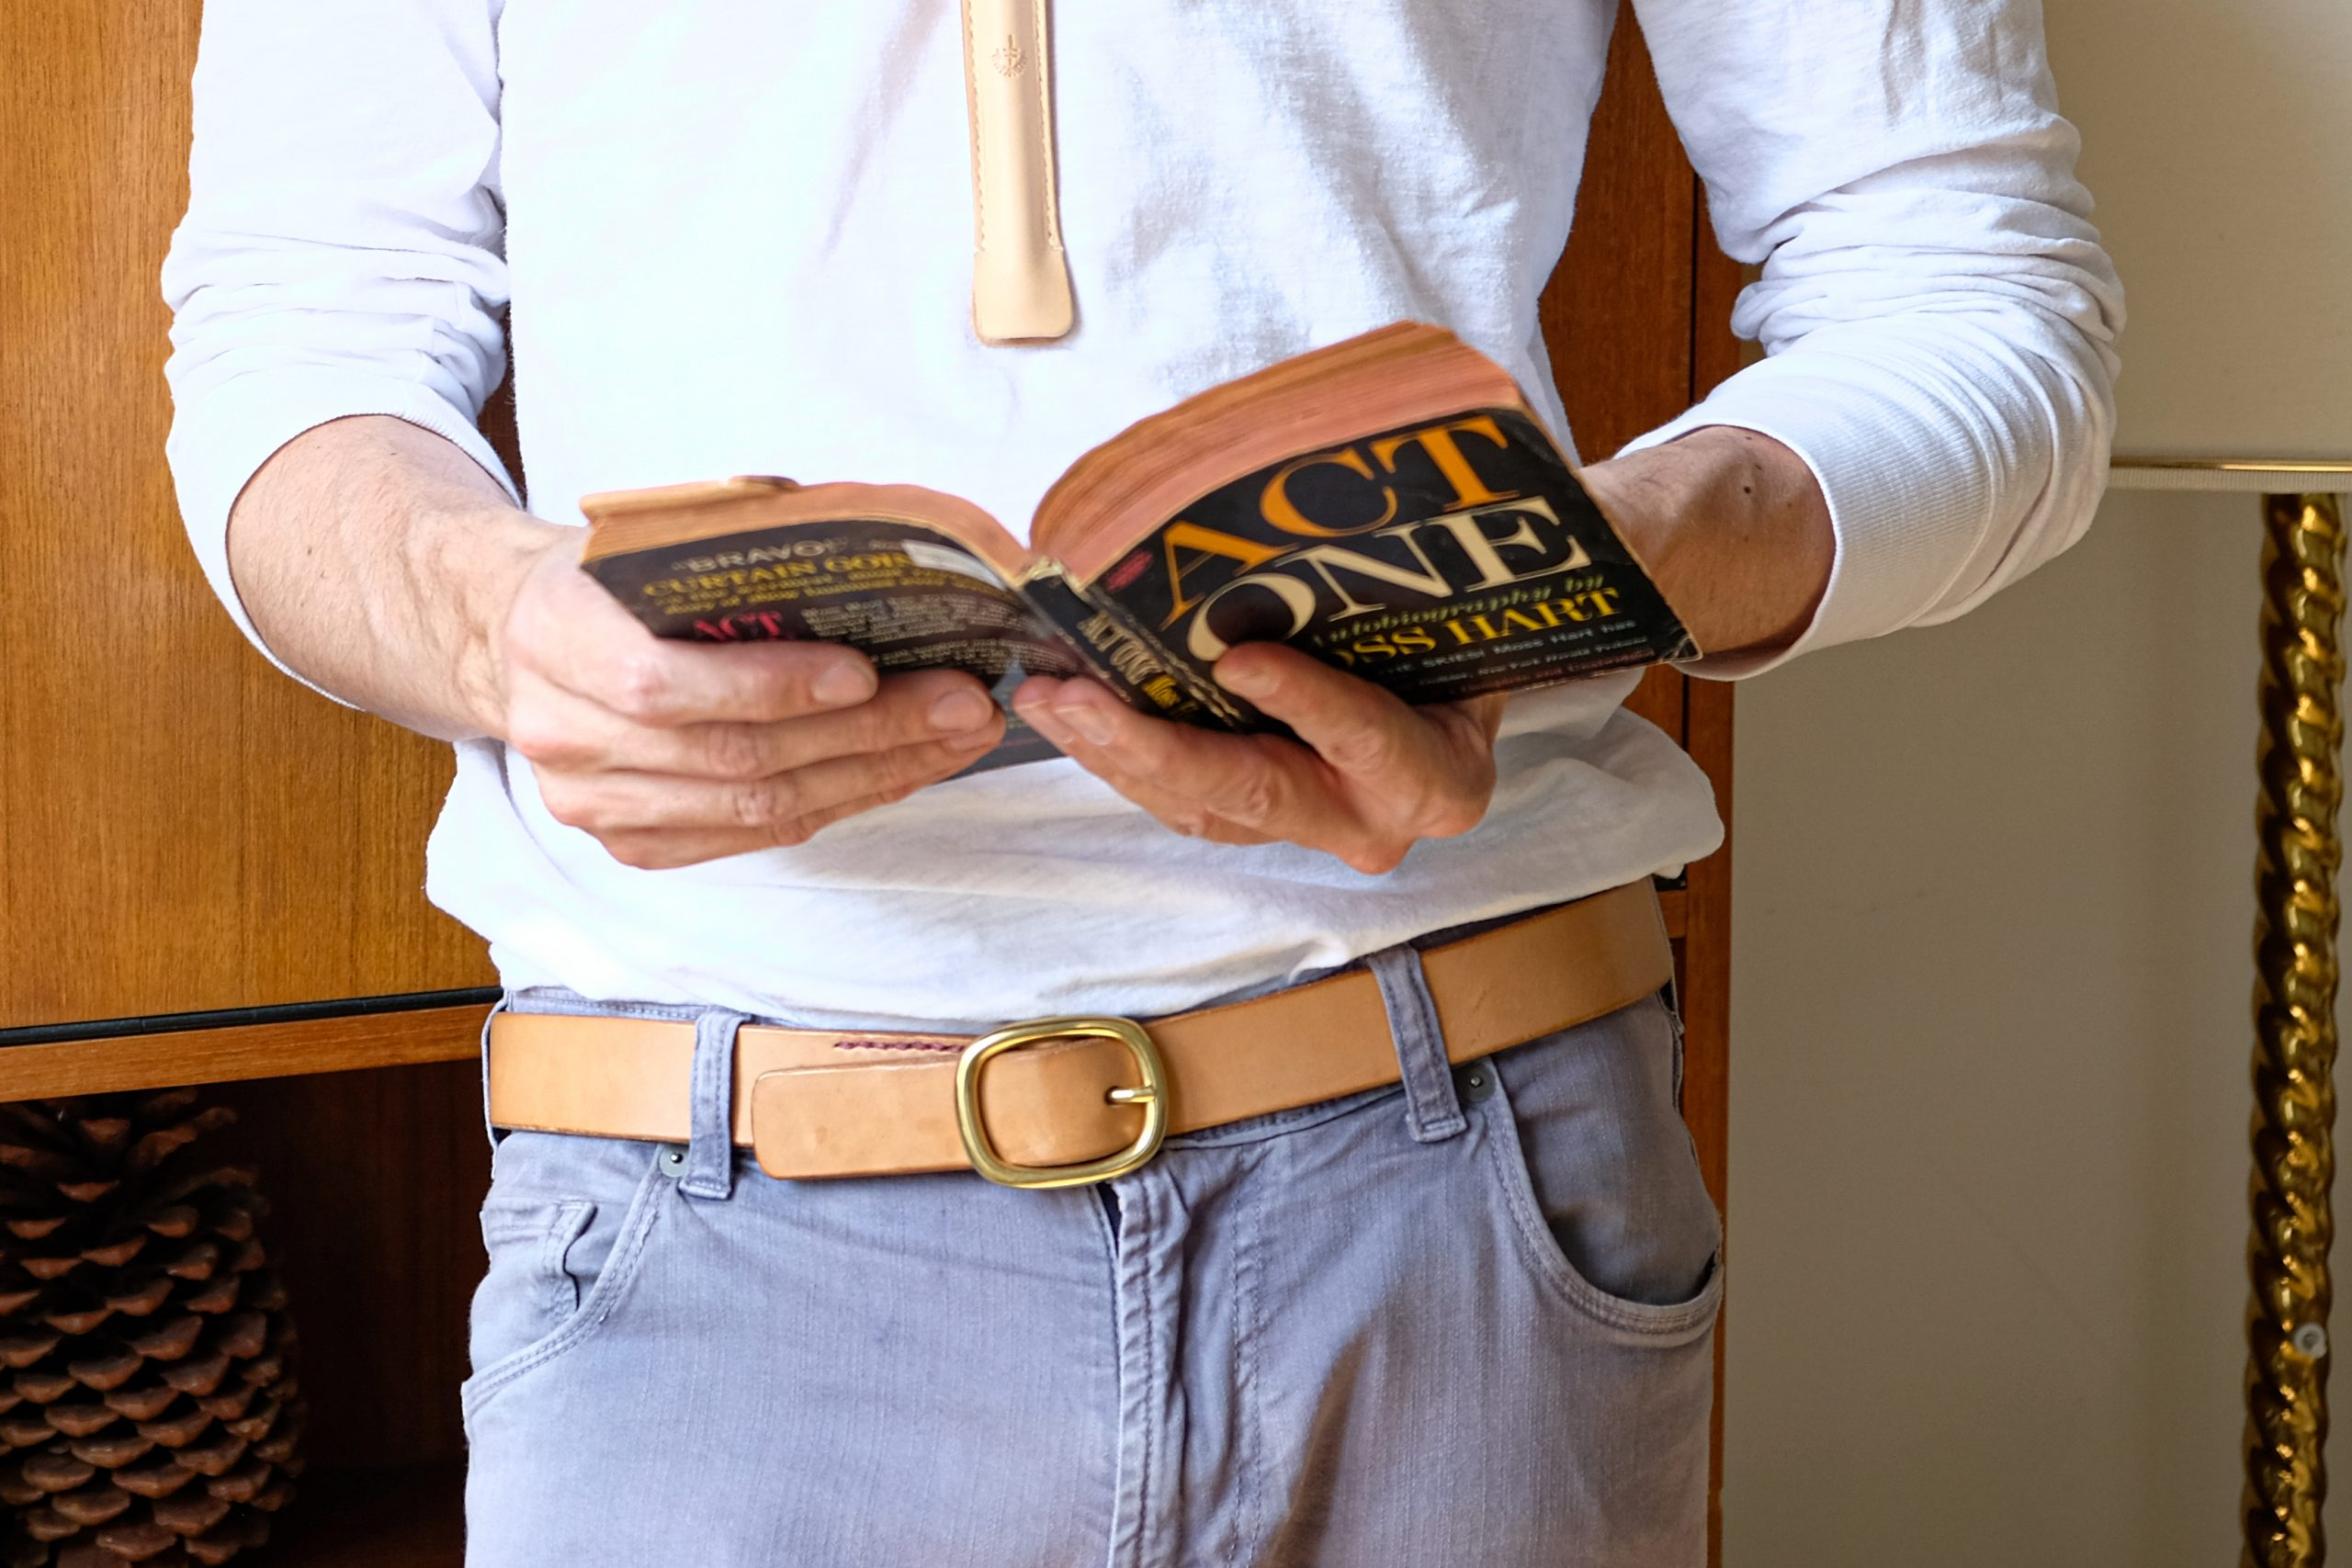 lerif designs custom leather forever belt with brass buckle on model reading a book